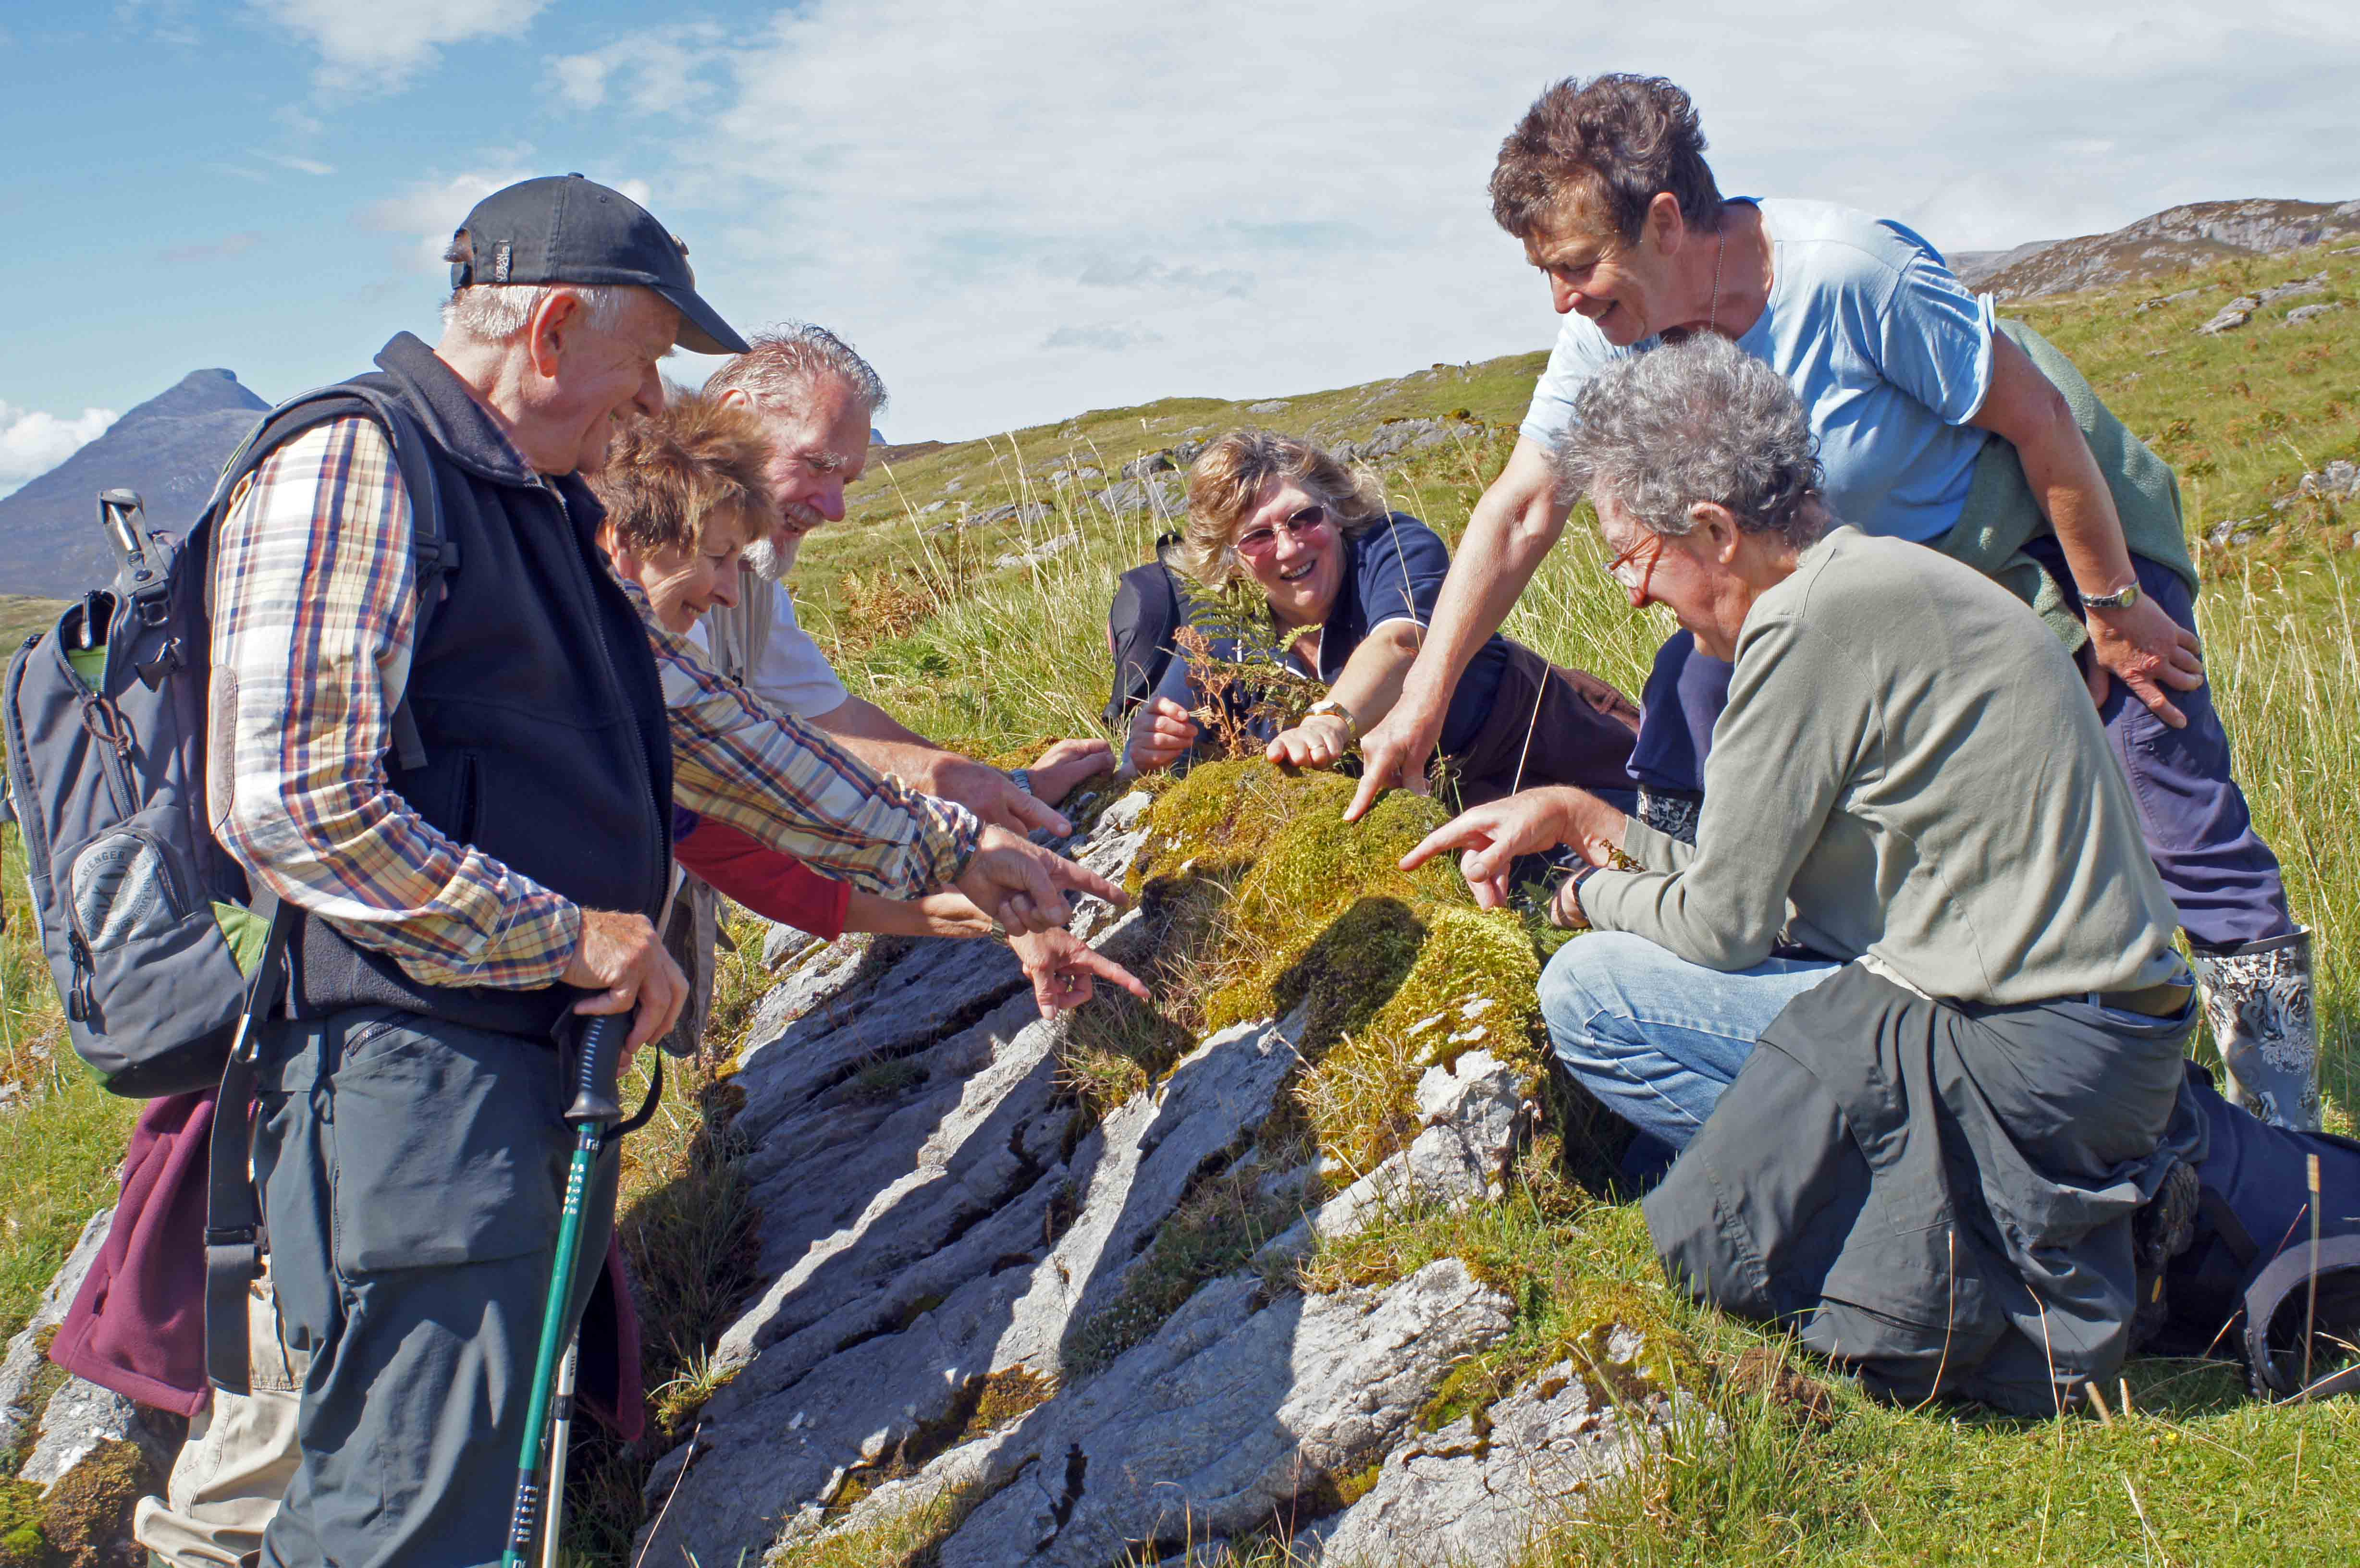 Picture showing six people examining a fungus on an exposed rock on a grassy hillside